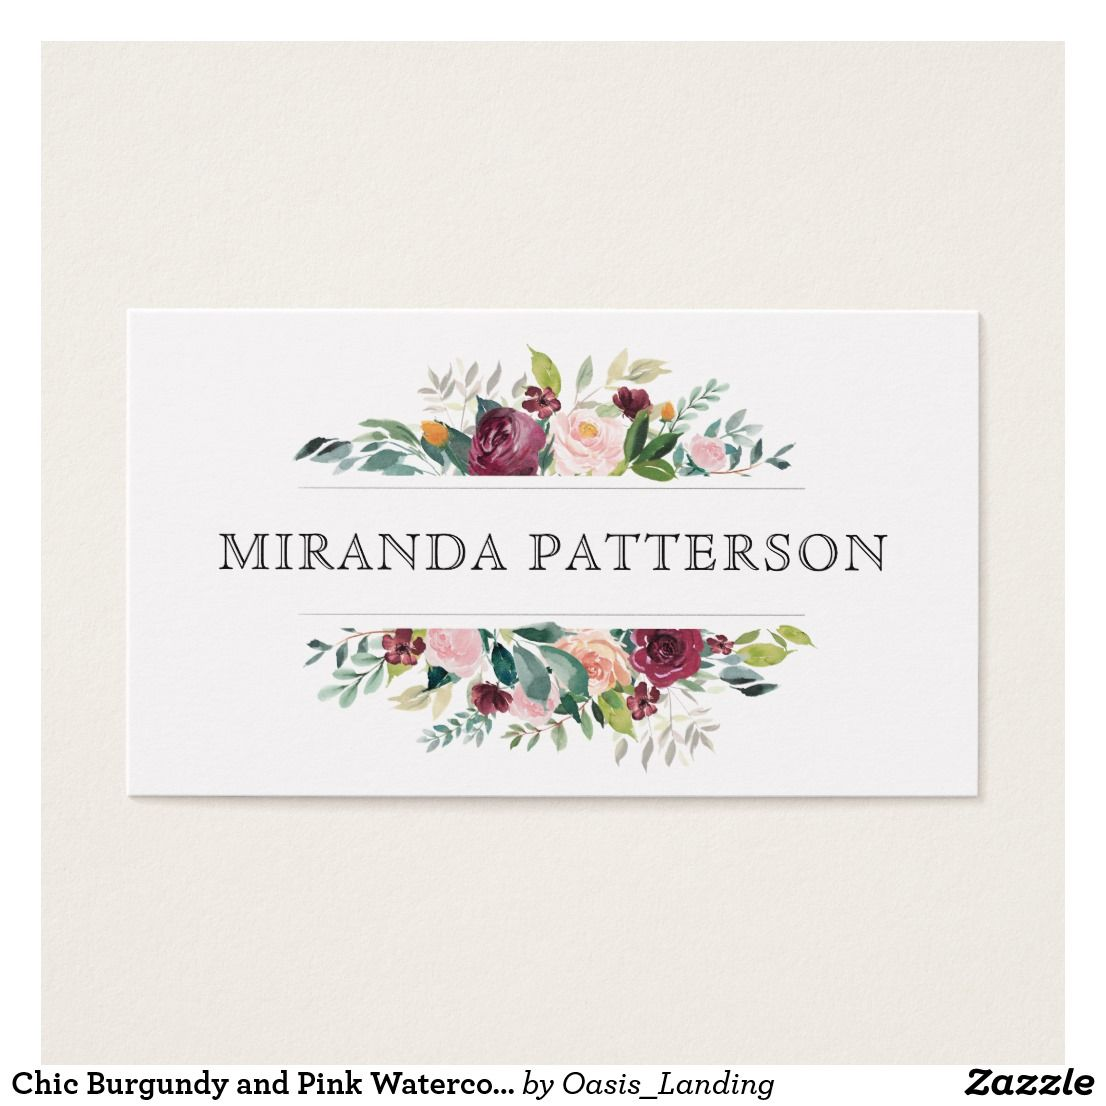 Chic Burgundy and Pink Watercolor Floral Frame Business Card - A ...